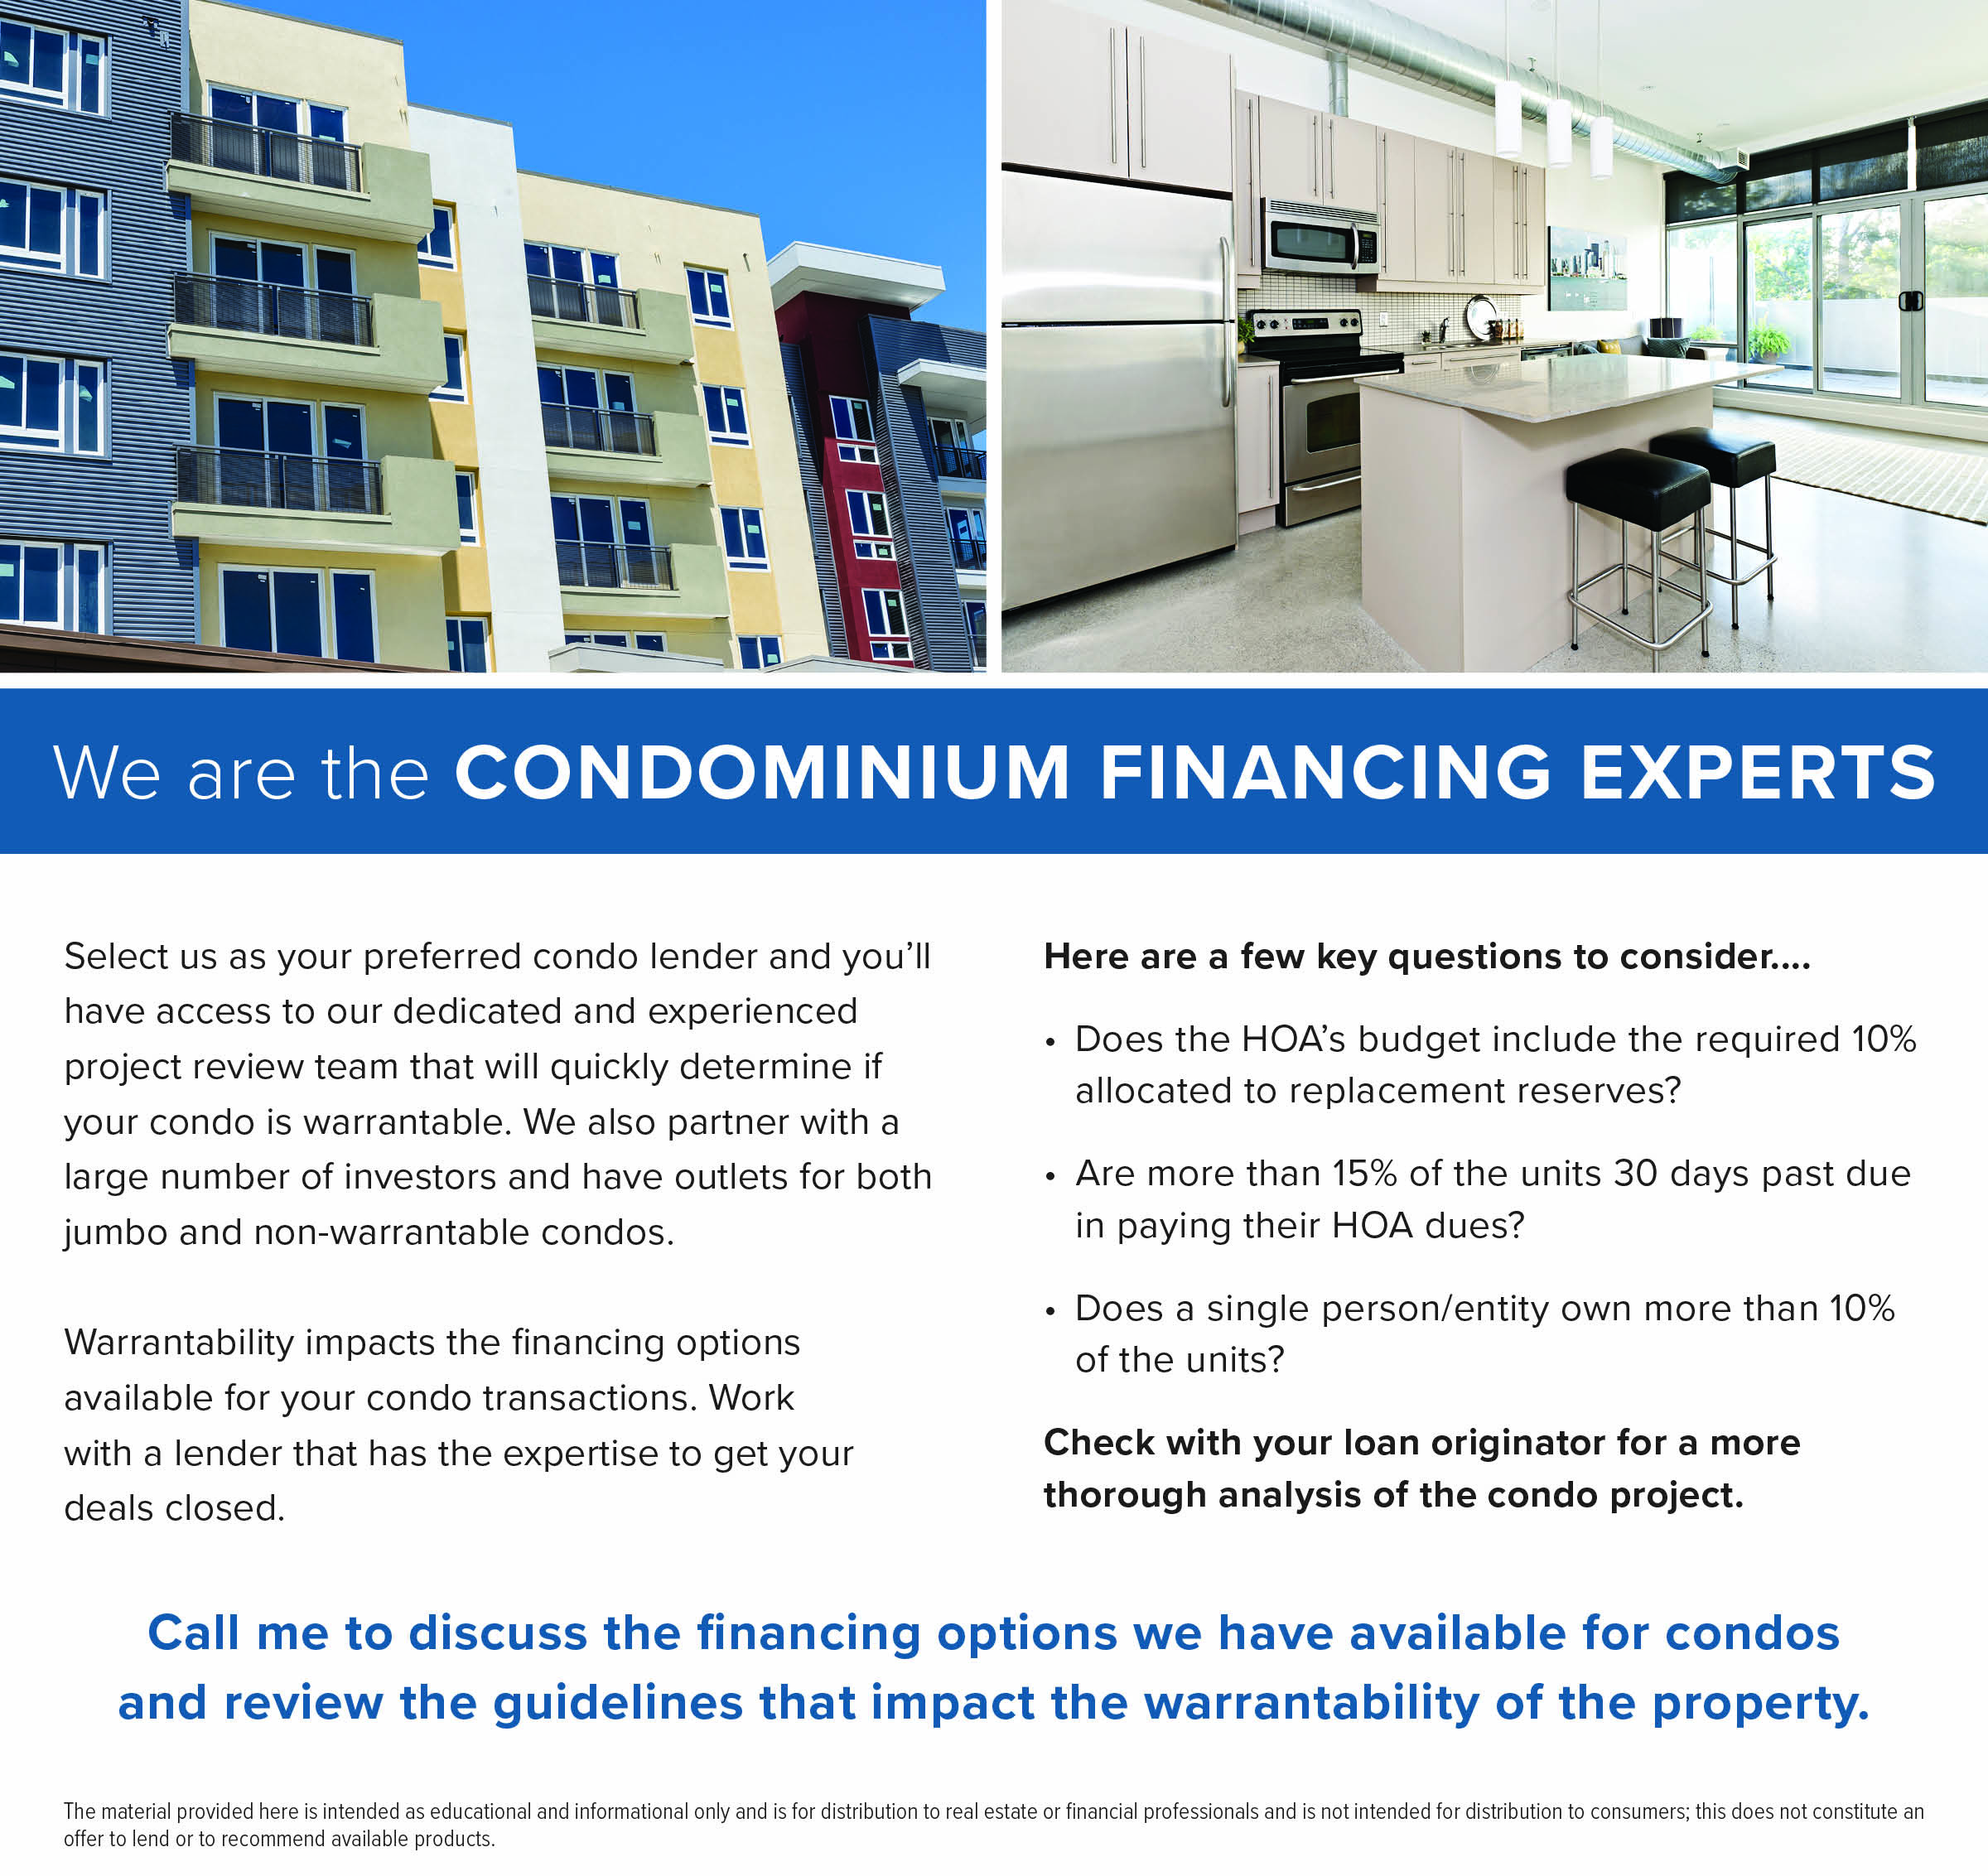 Condos - Referral Only - Condominium Financing Experts - OSI.jpg